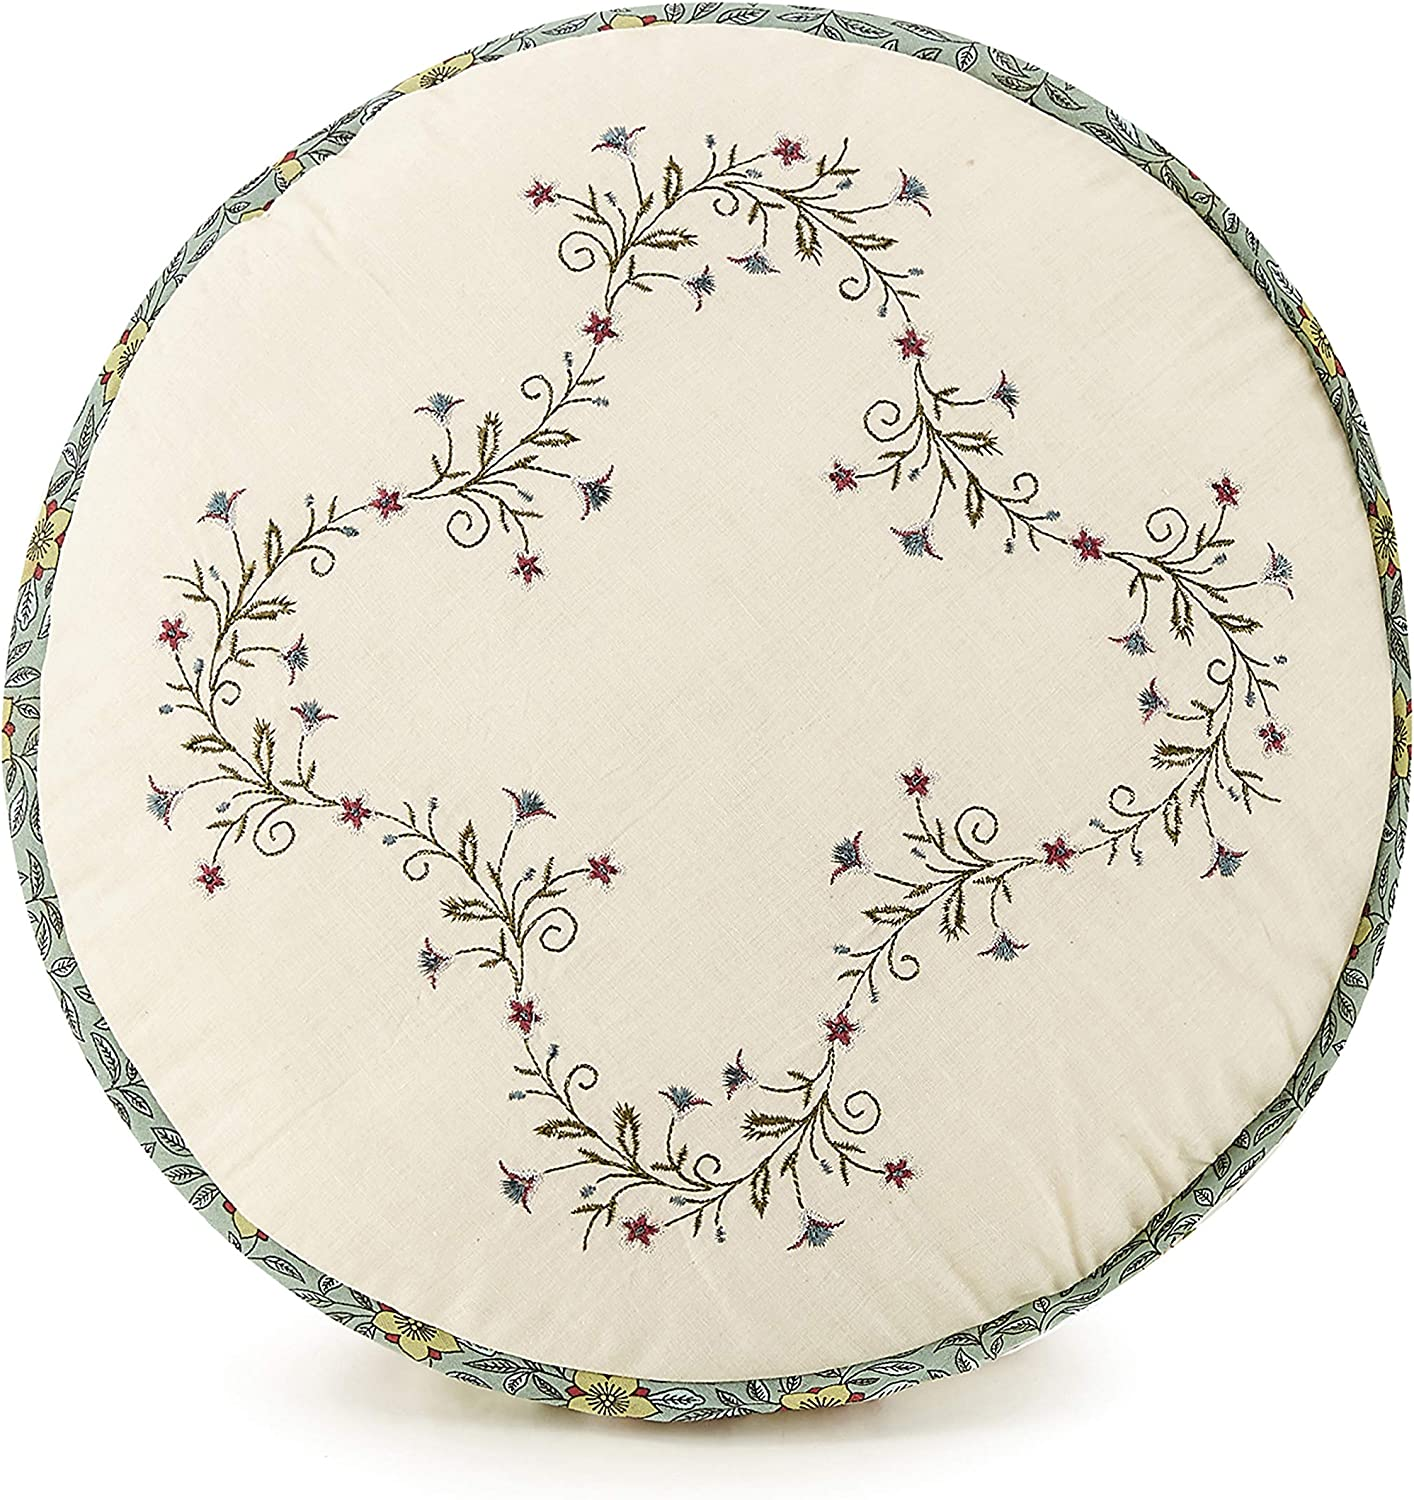 Modern Heirloom Collection Olivia Max 64% OFF Cheap Round P Decorative Embroidered